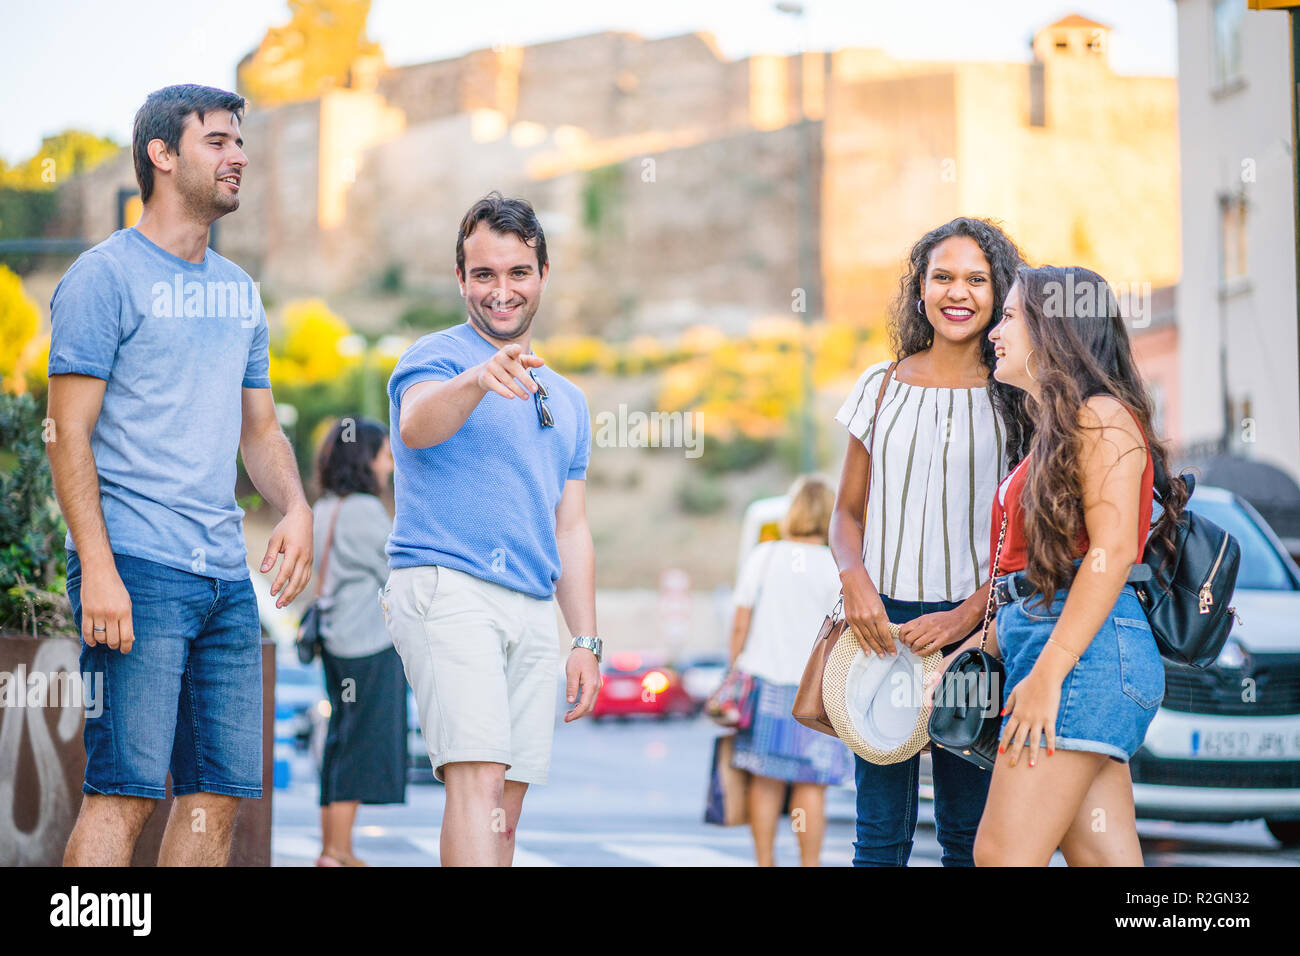 Happy four friends hanging out in the afternoon in the city - Stock Image